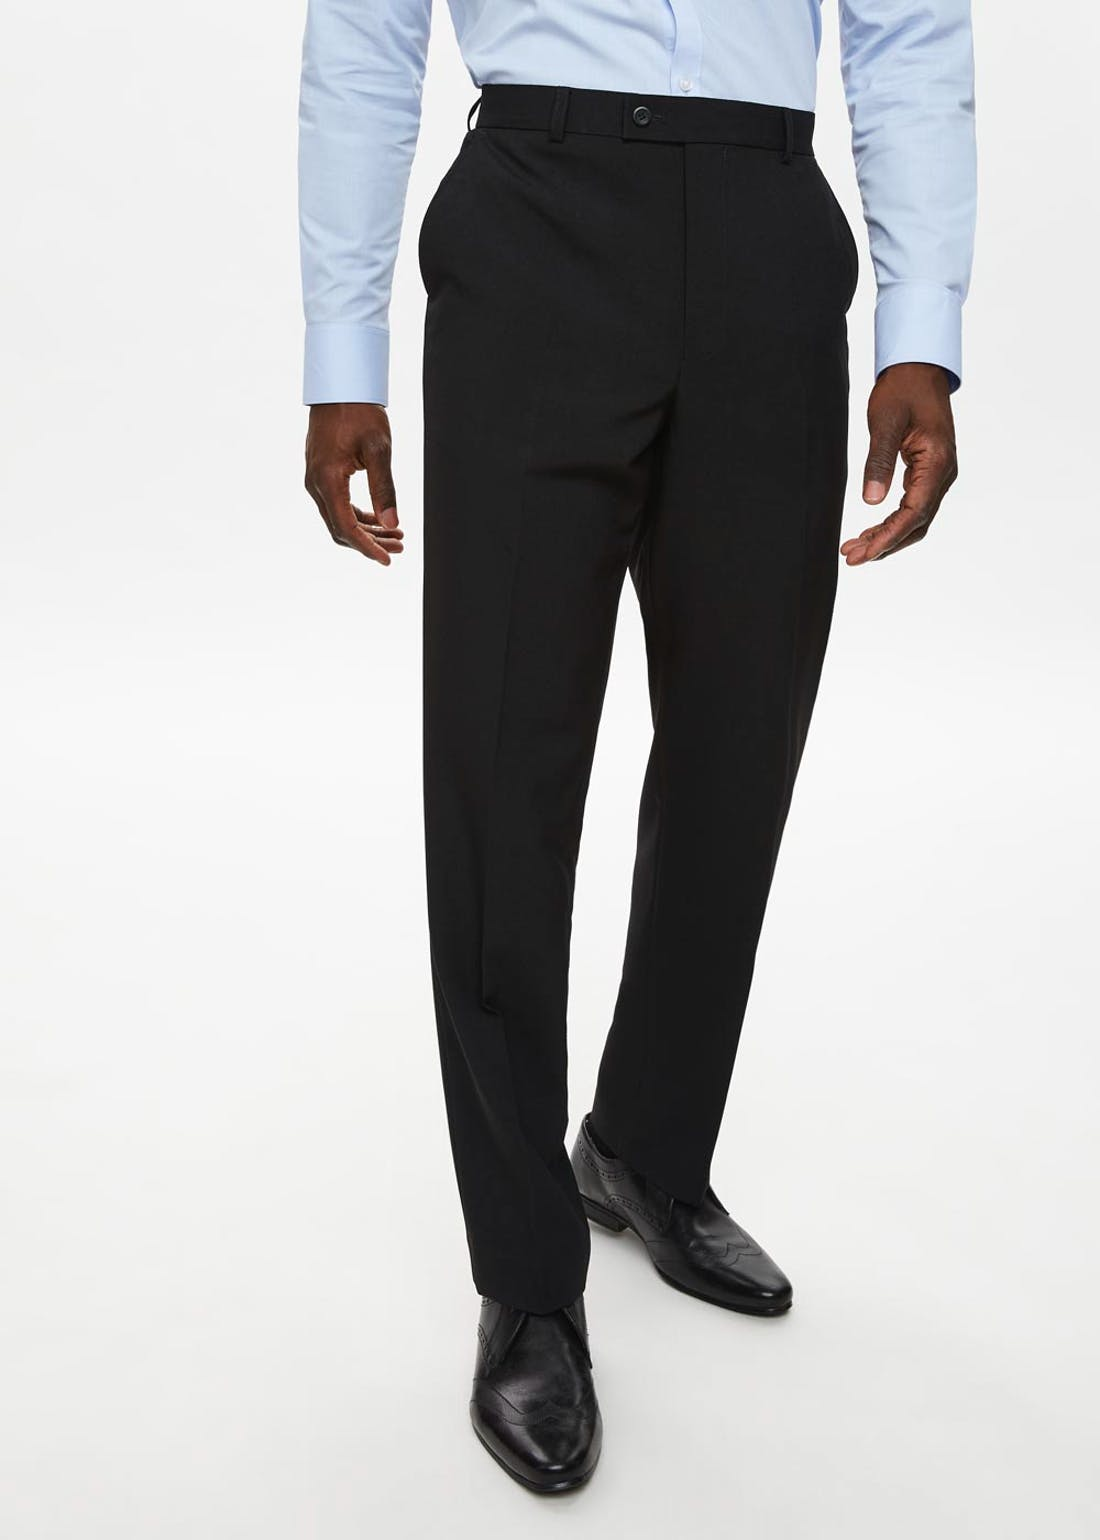 Taylor & Wright Regular Fit Formal Trousers